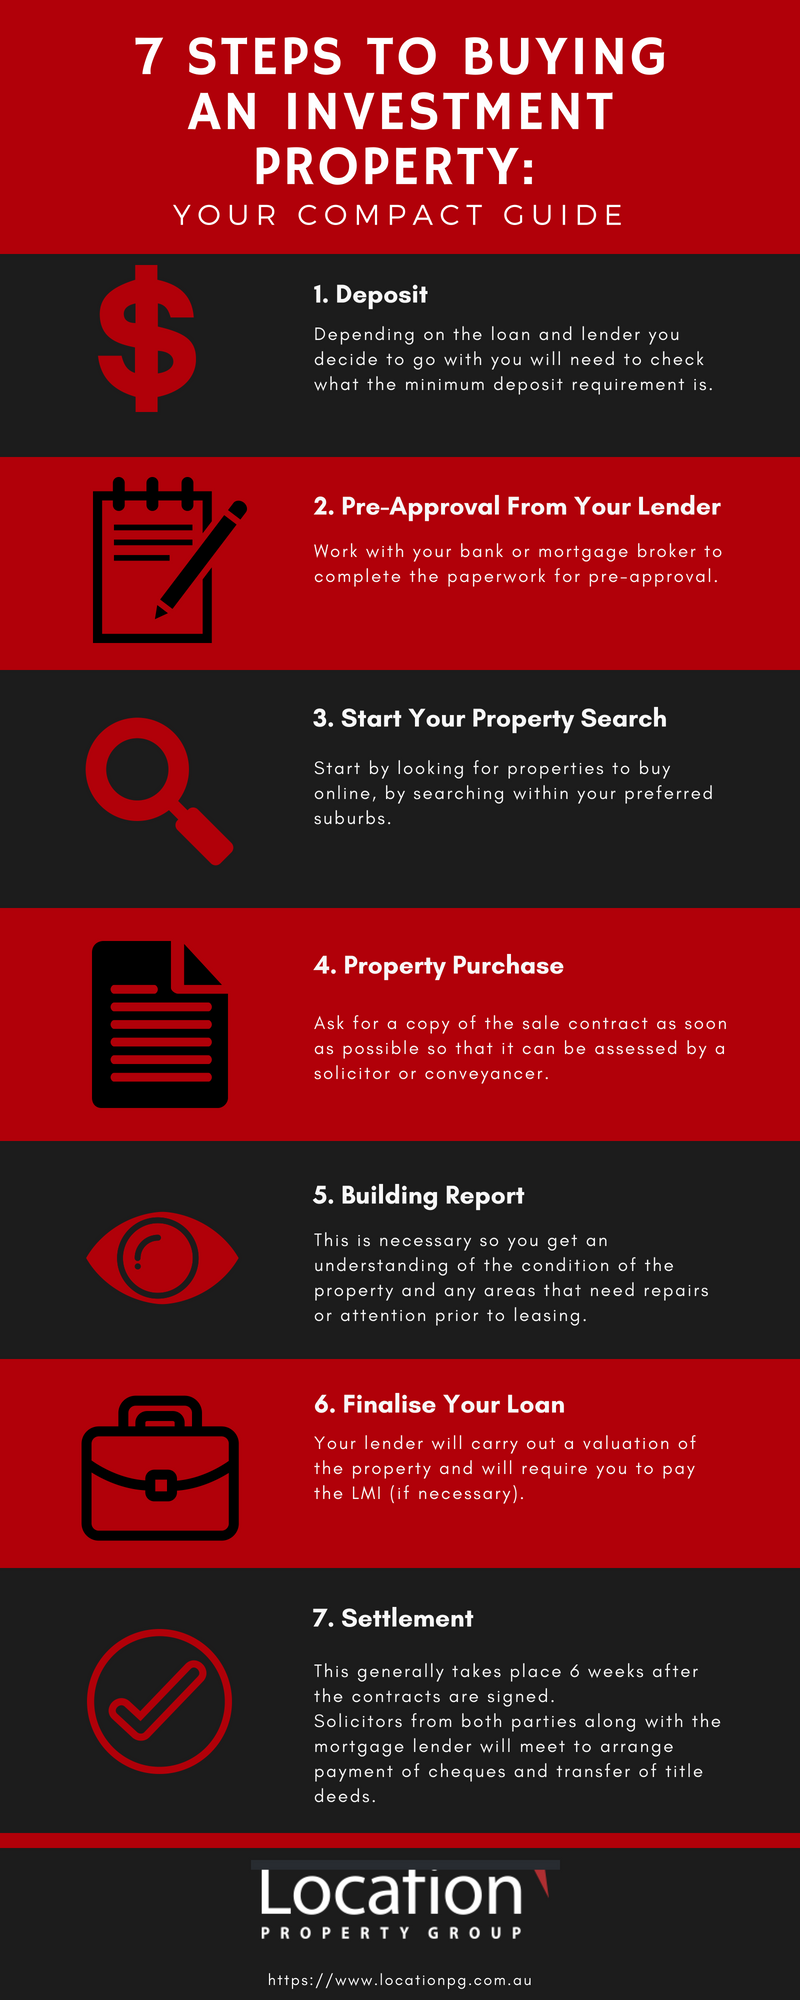 7 Steps to buying an investment property